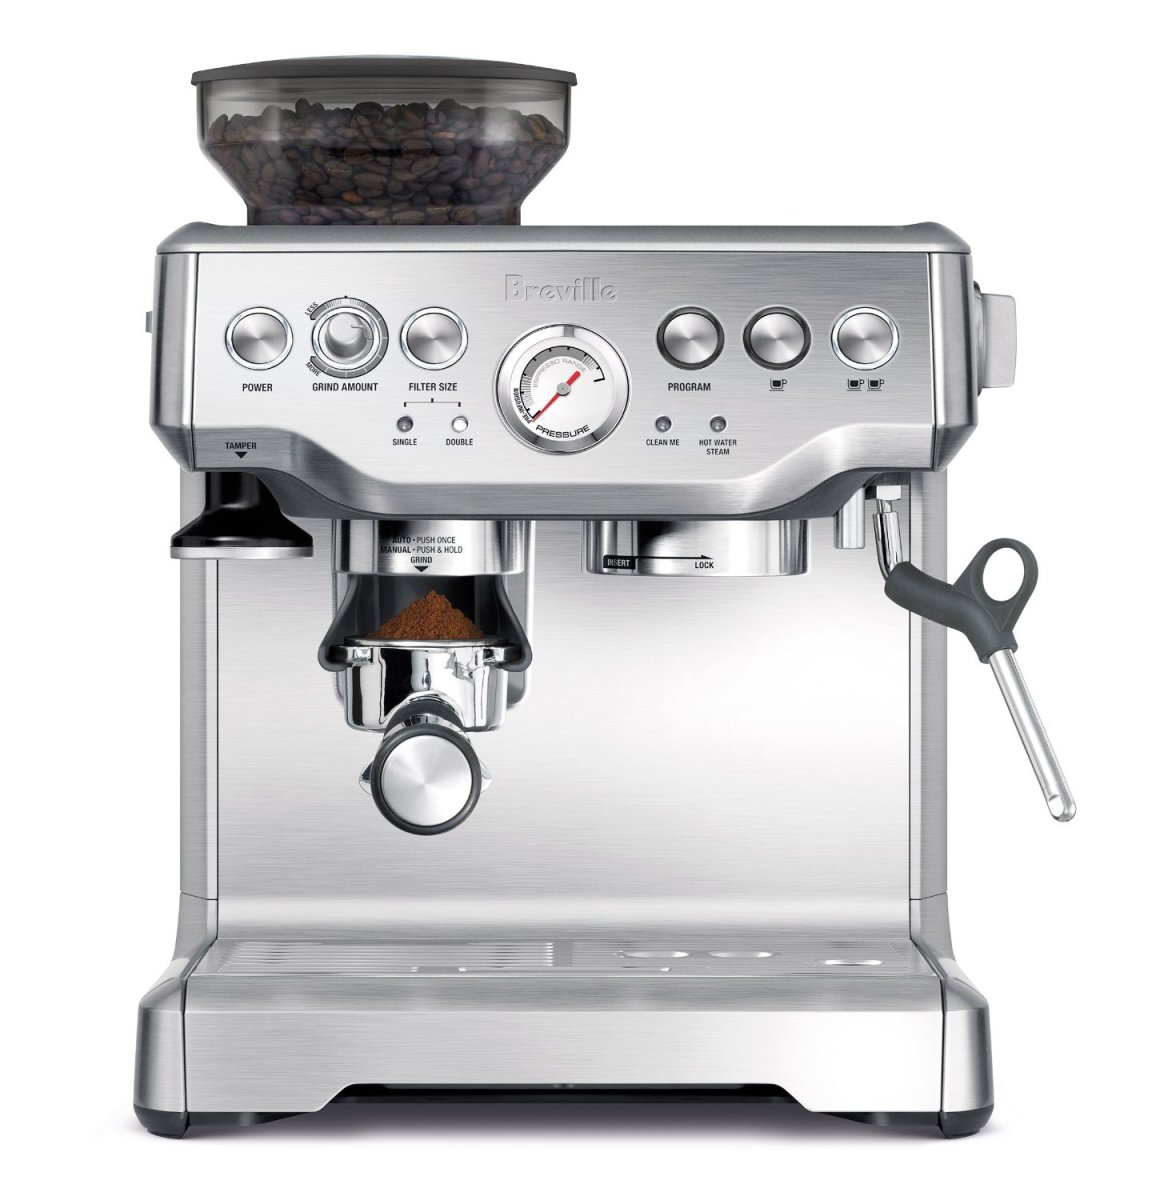 Breville BES870XL Espresso Machine - Pros and Cons From an Owner